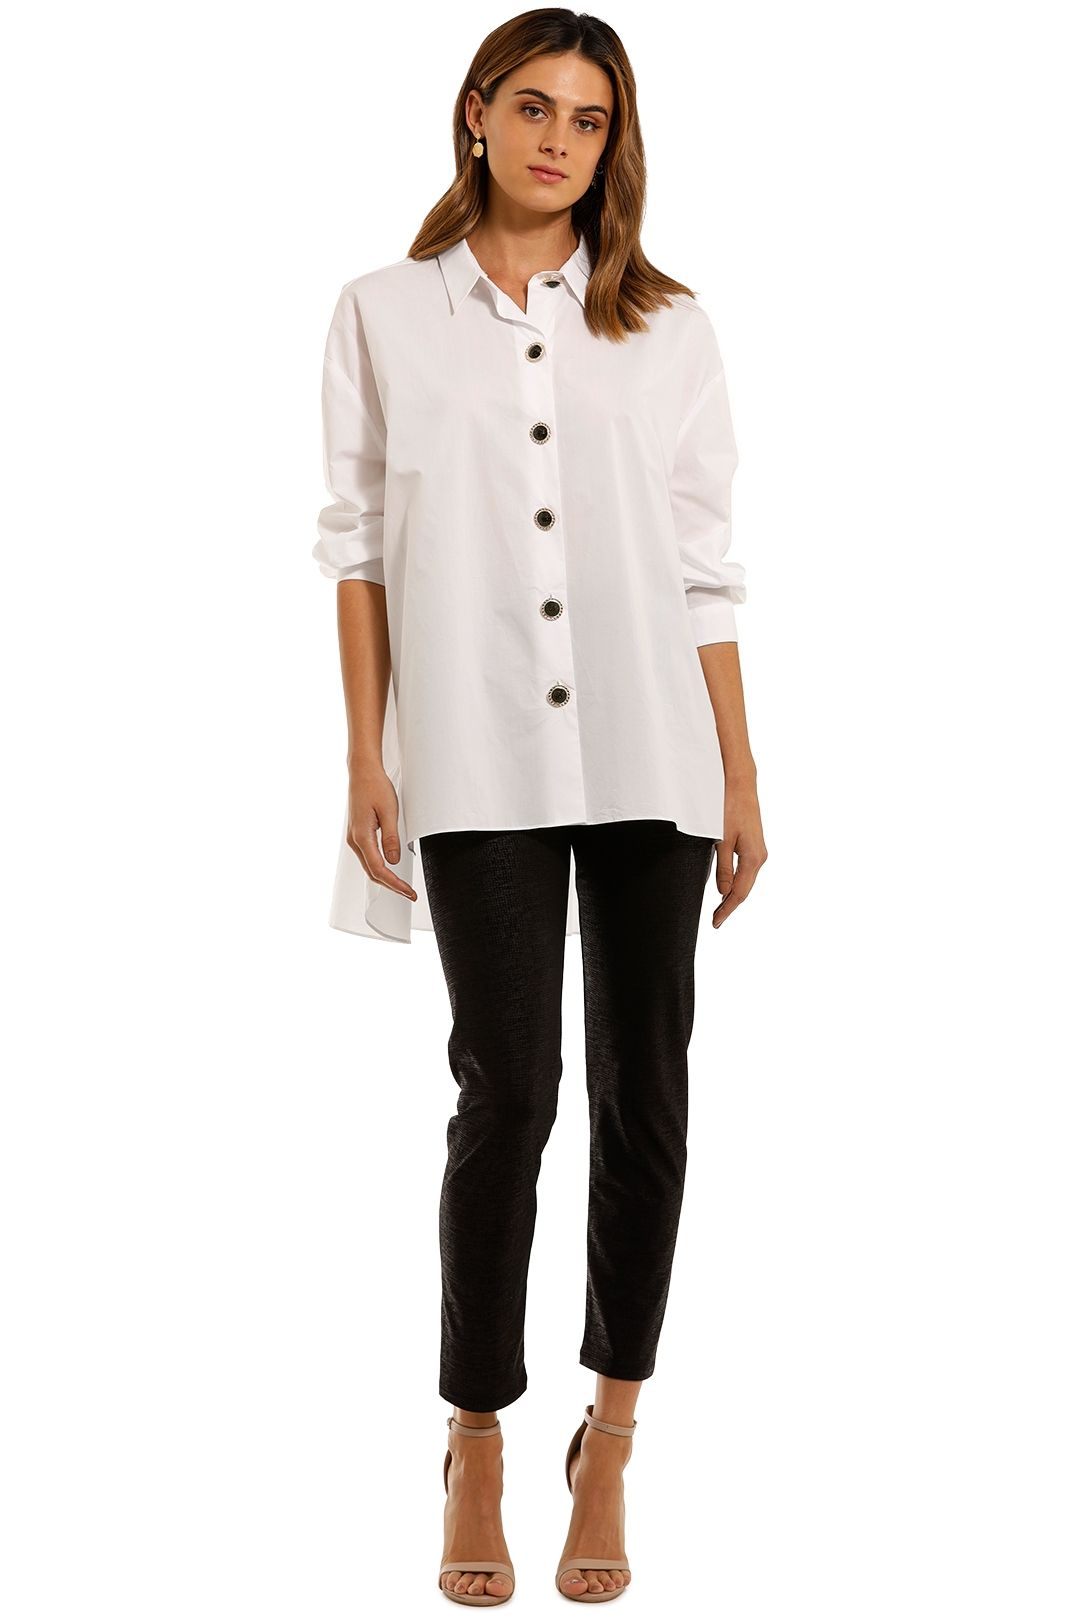 Cooper by Trelise Cooper Button Me Up Shirt white